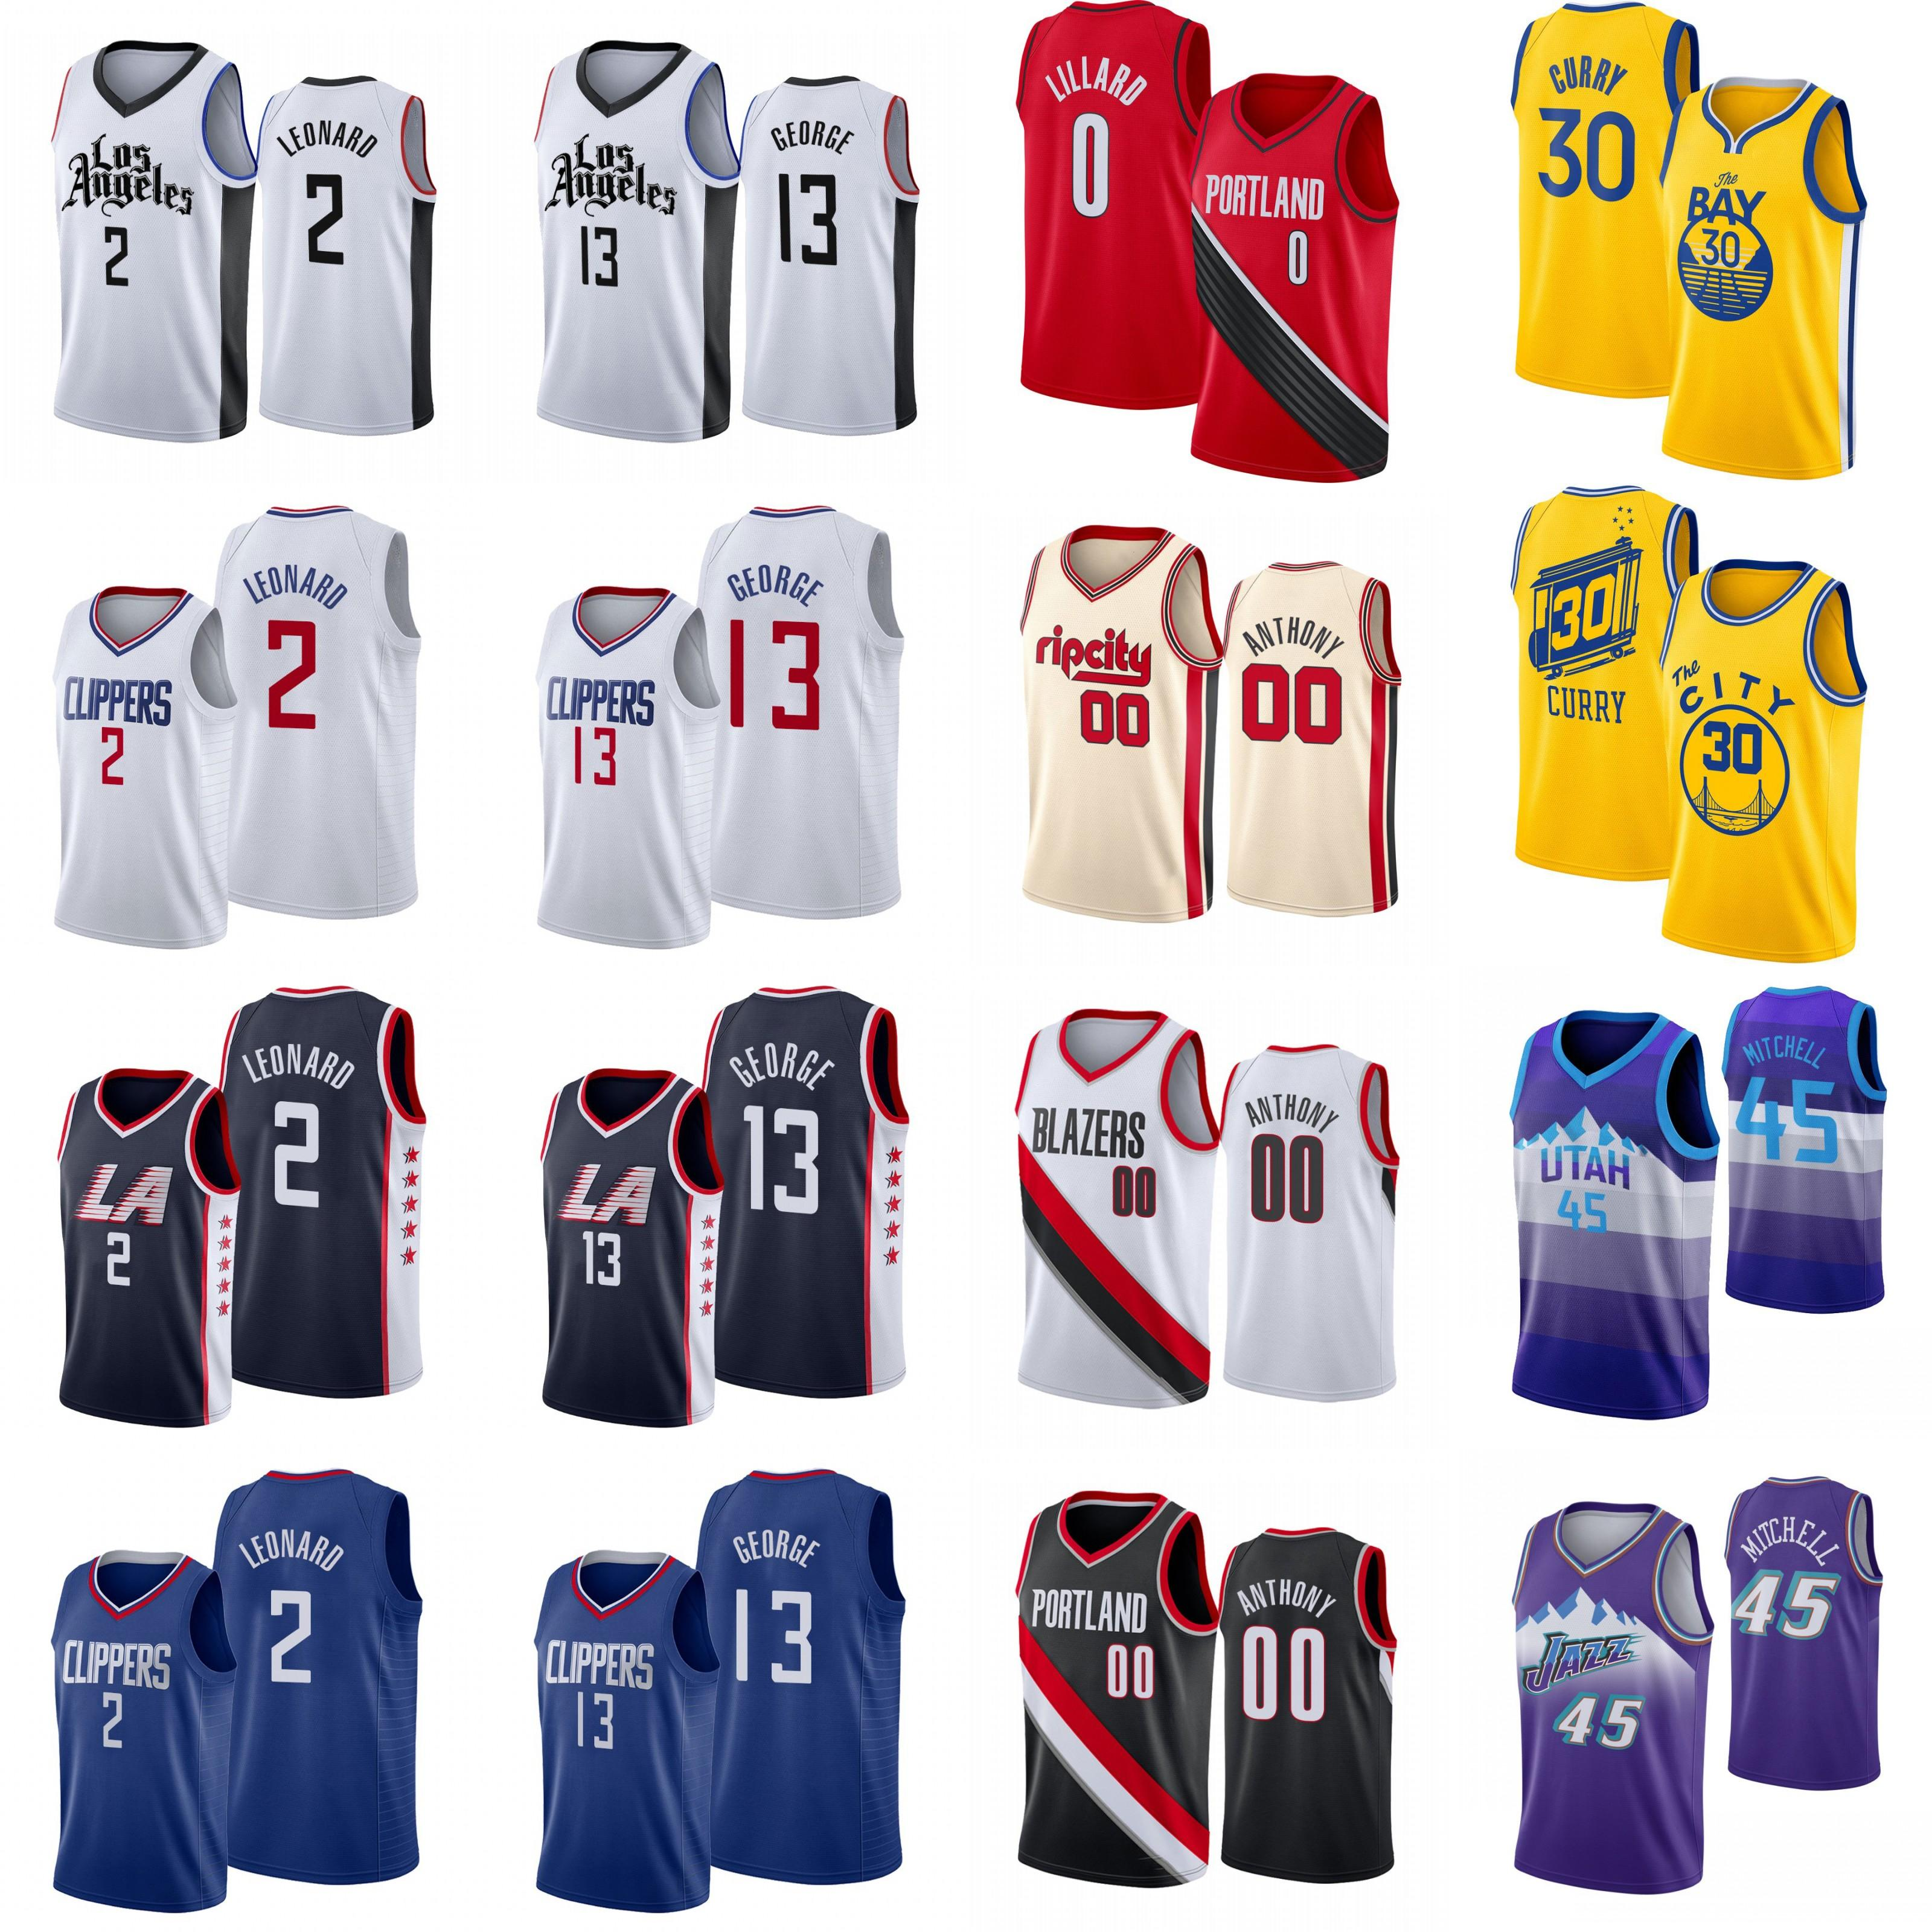 Stephen 30 Curry Carmelo 00 Anthony Damian 0 Lillard 2 Leonard Paul 13 George Donovan 45 Mitchell Men College High school Basketball Jerseys